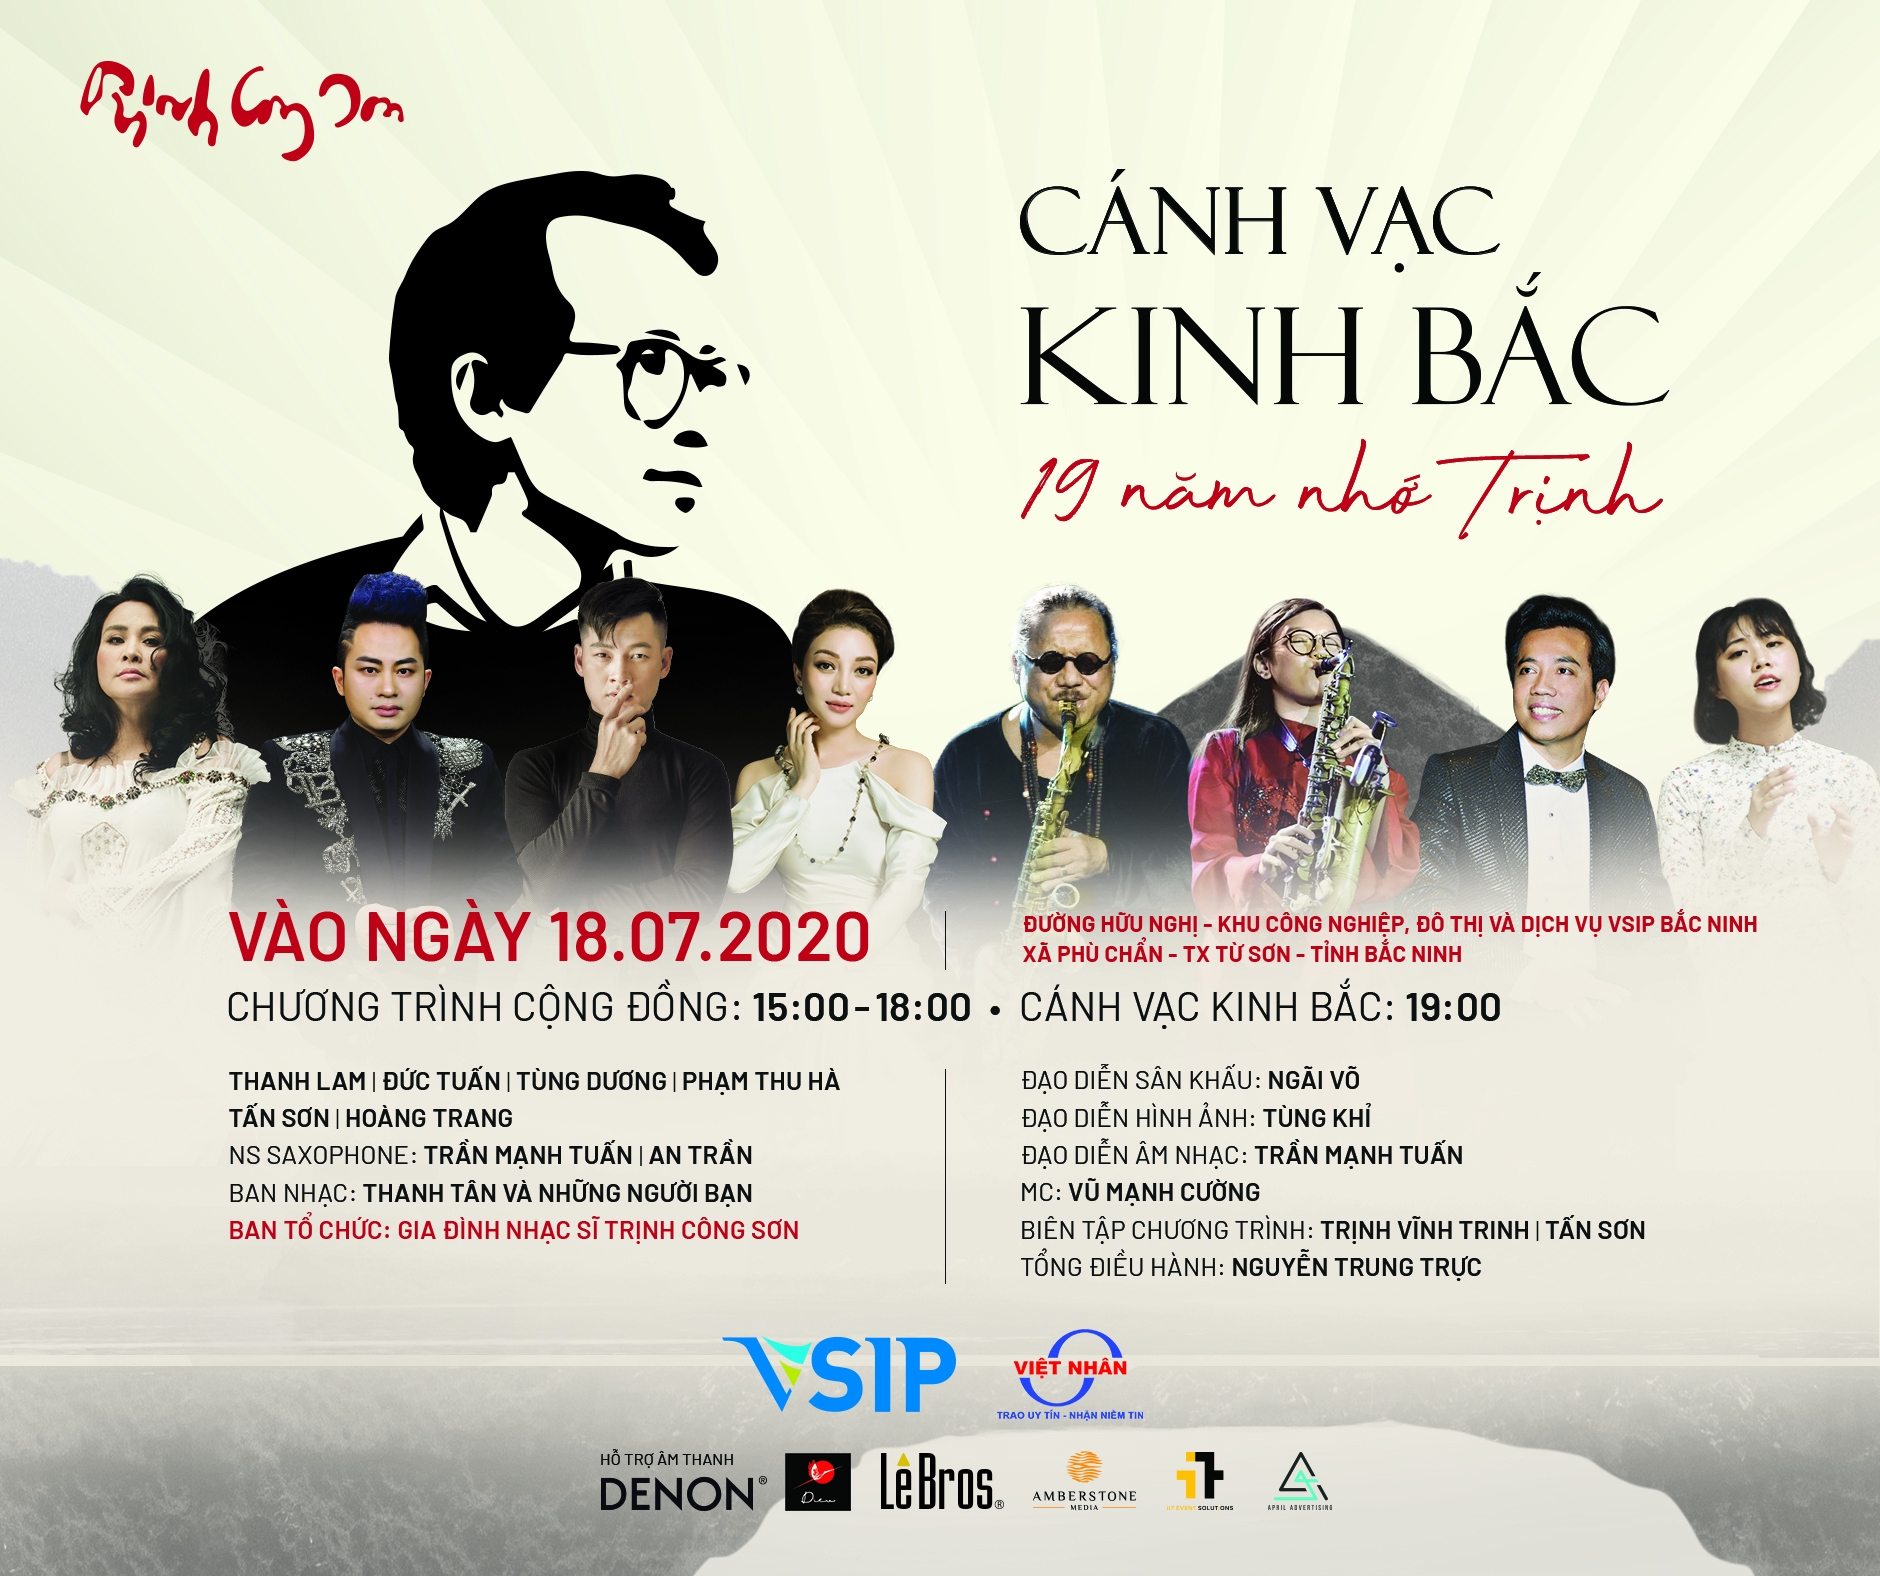 vsip bac ninh to hold concert to commemorate trinh cong son